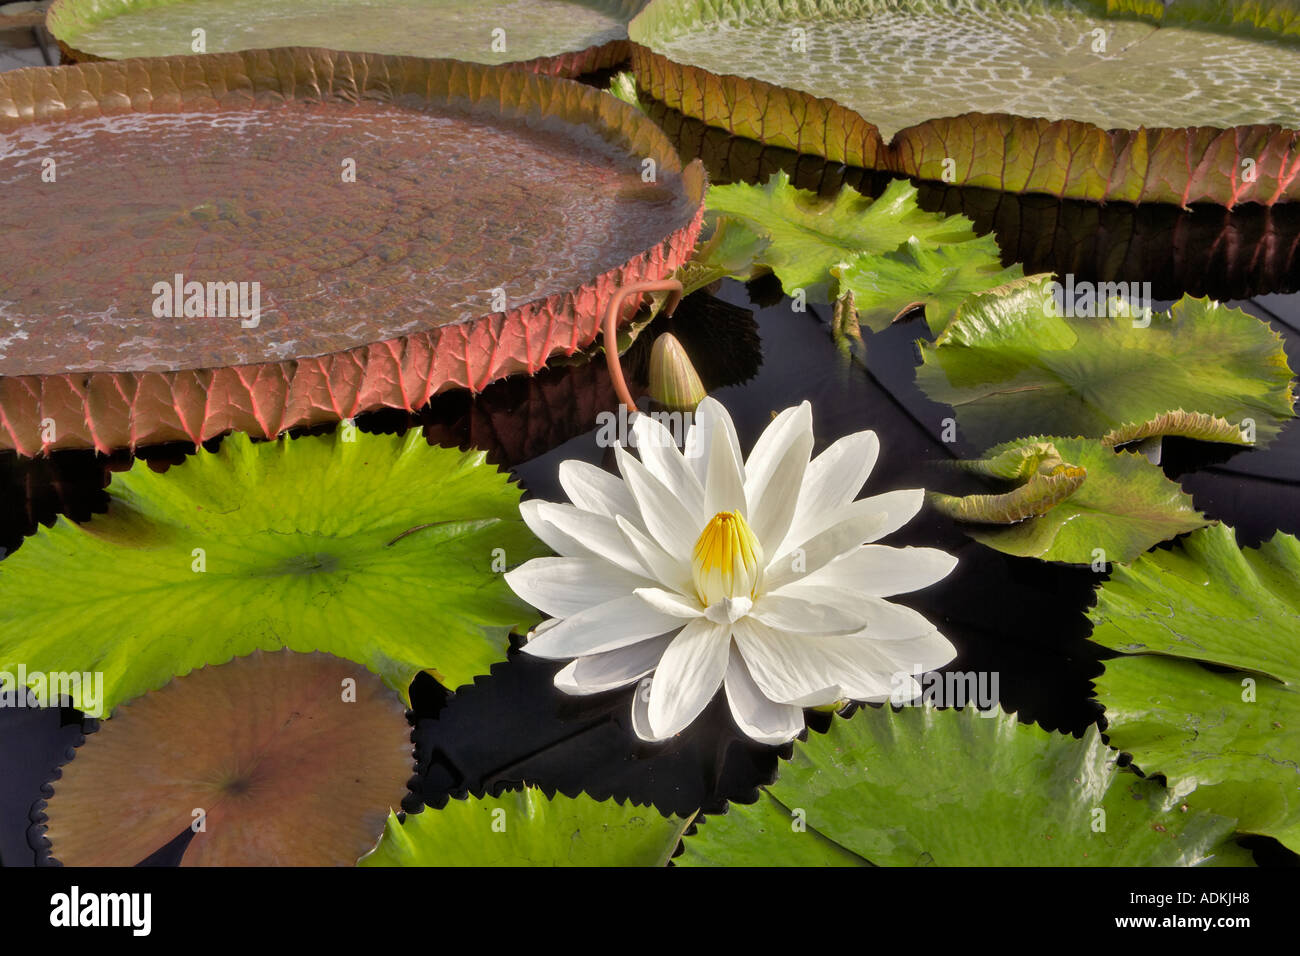 Amazon Pond Plants